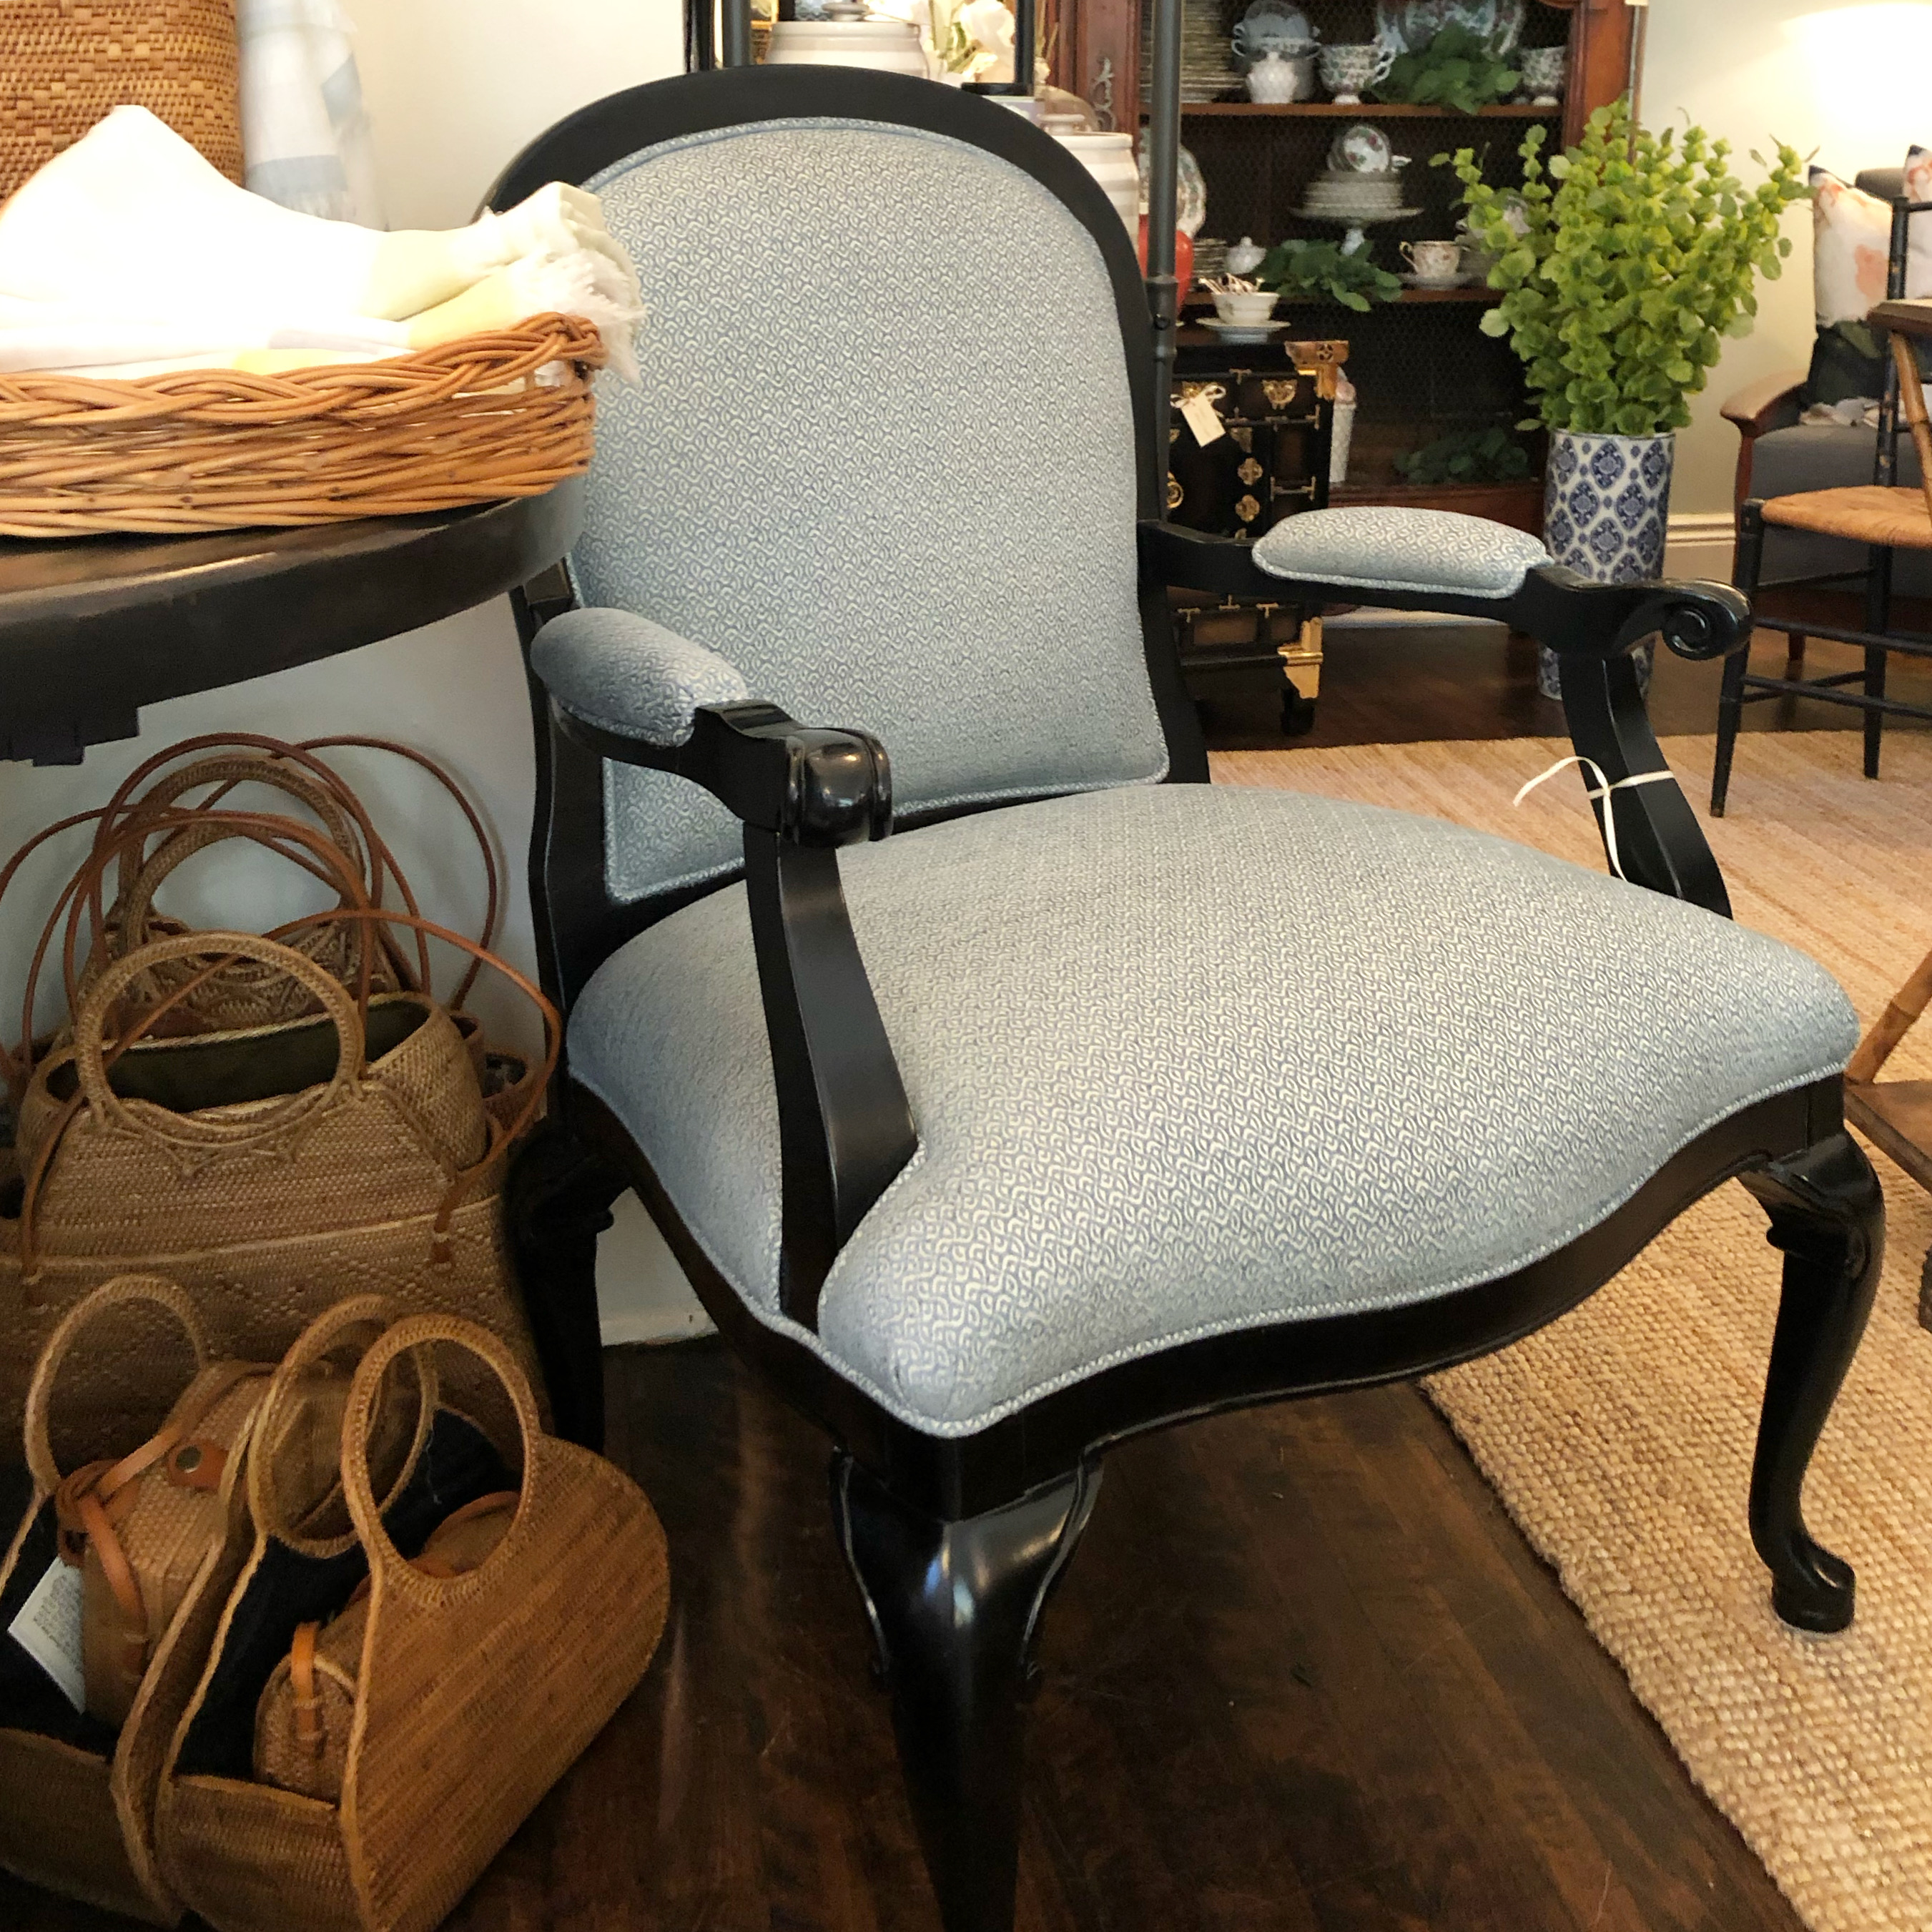 Vintage Upholstered Chair w/ Ebony Wood